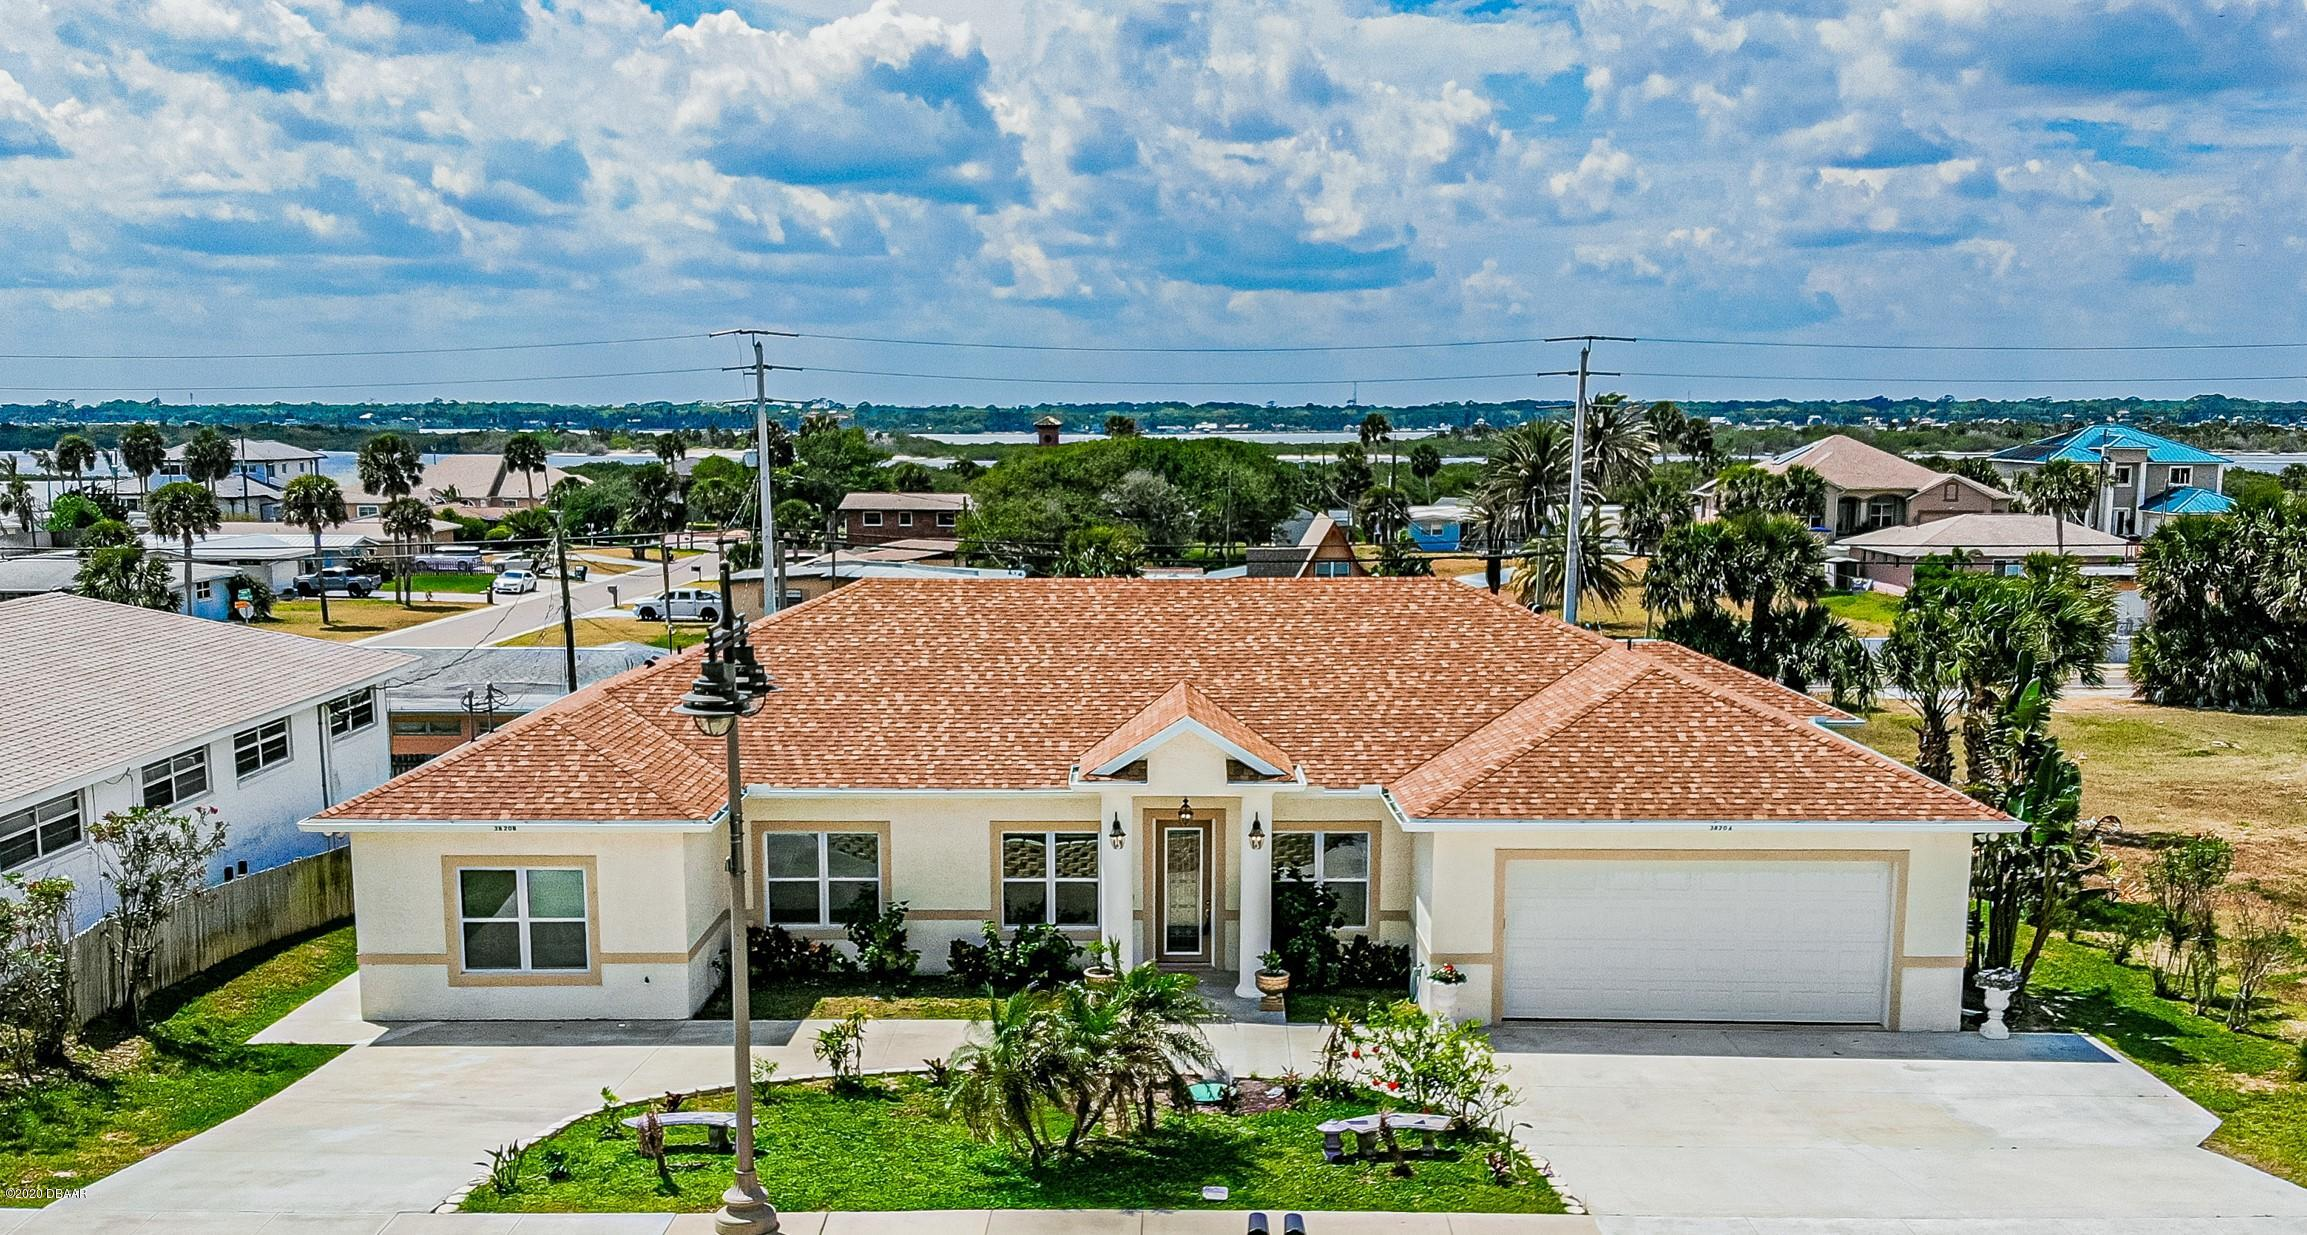 3820 S Atlantic Avenue, Daytona Beach Shores, Florida